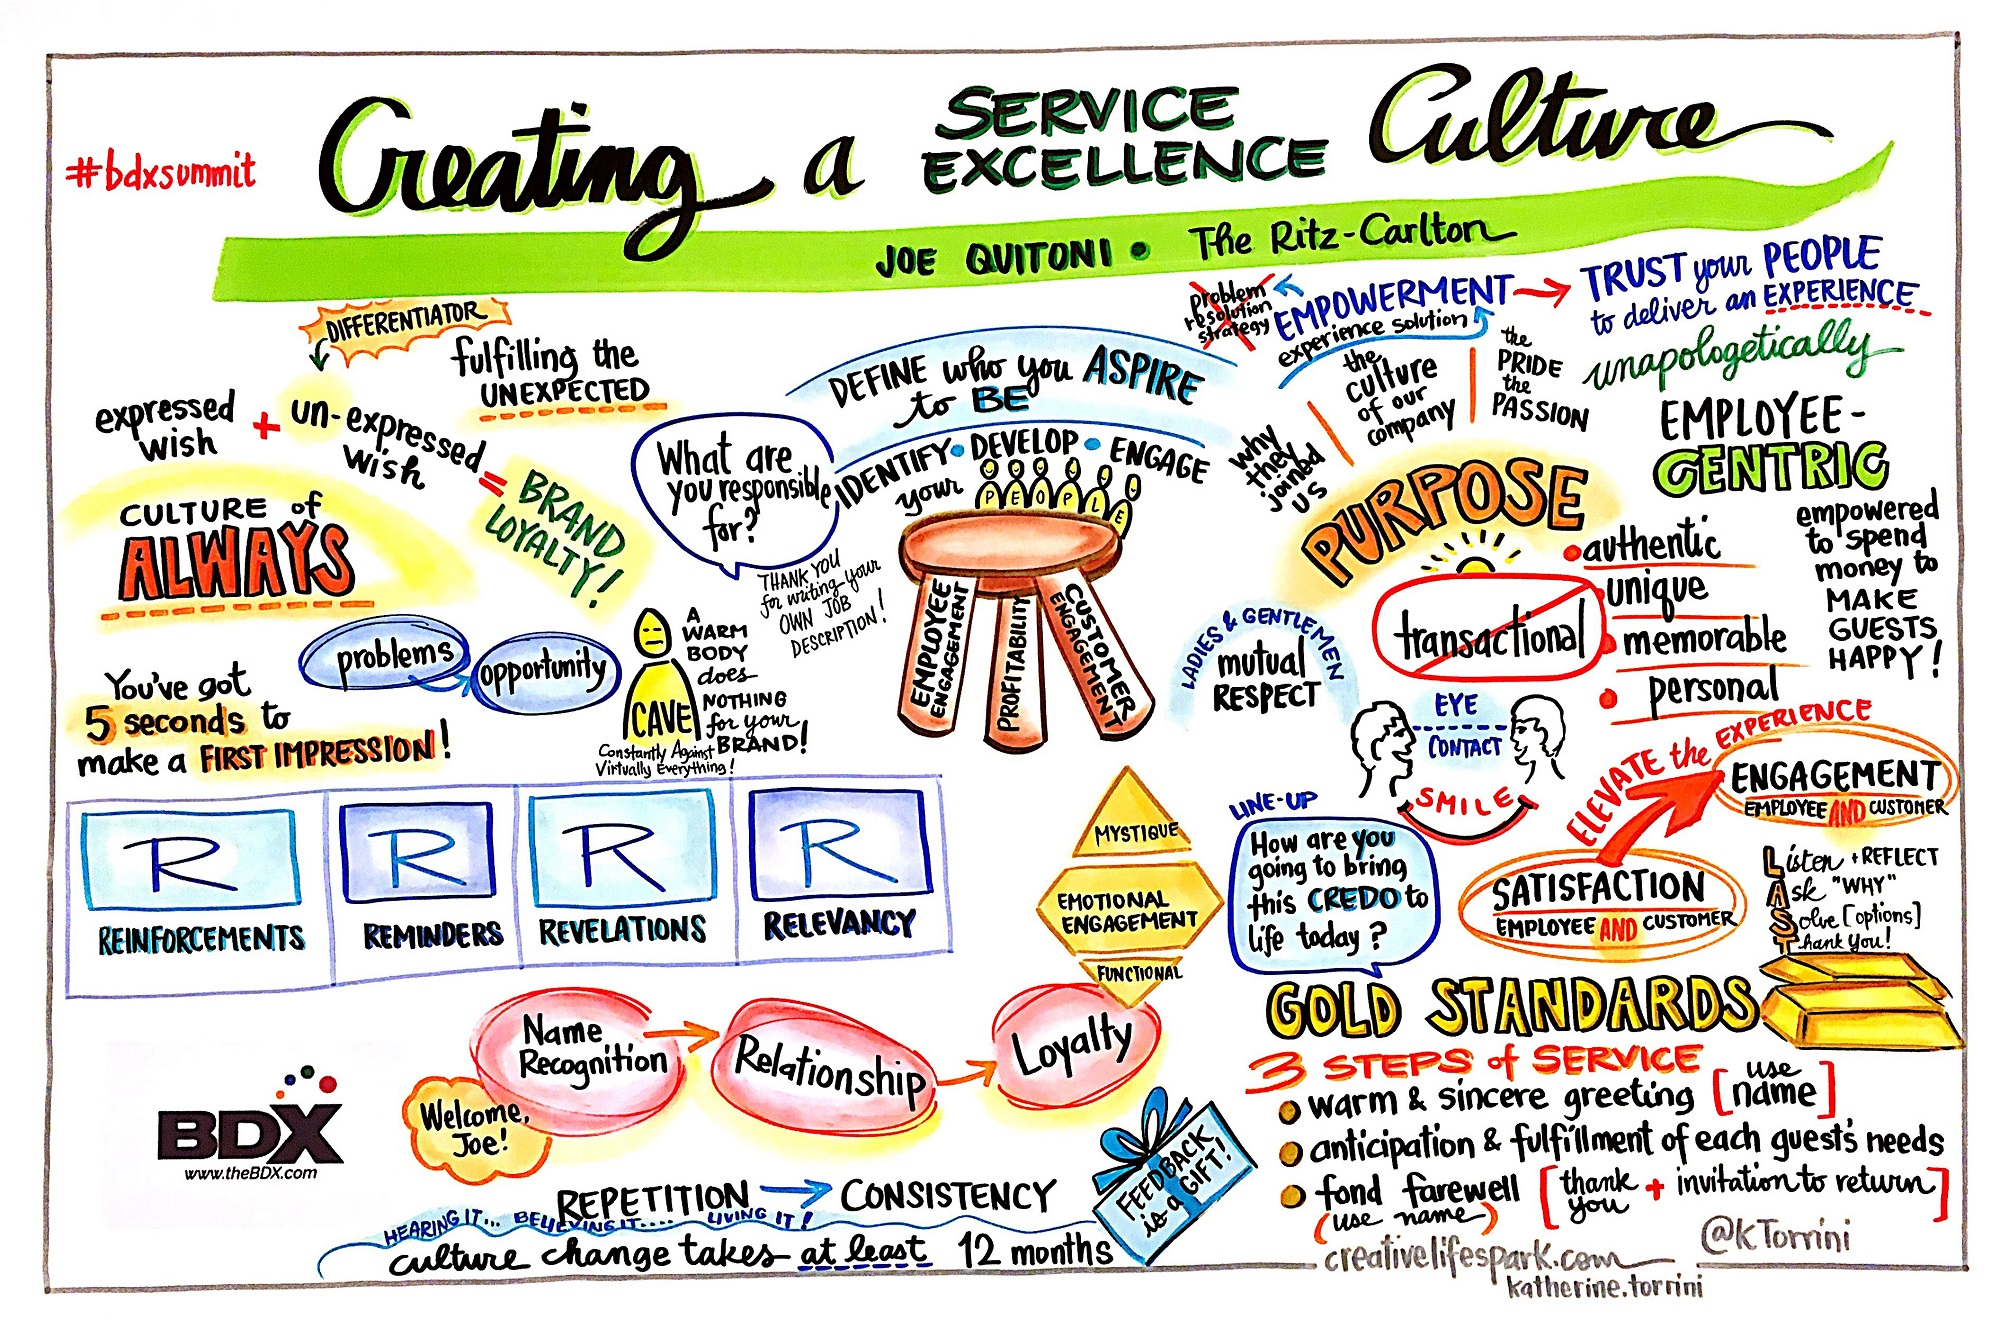 BDX's Infographic Lays Out The Steps To Creating A Service Excellence Culture